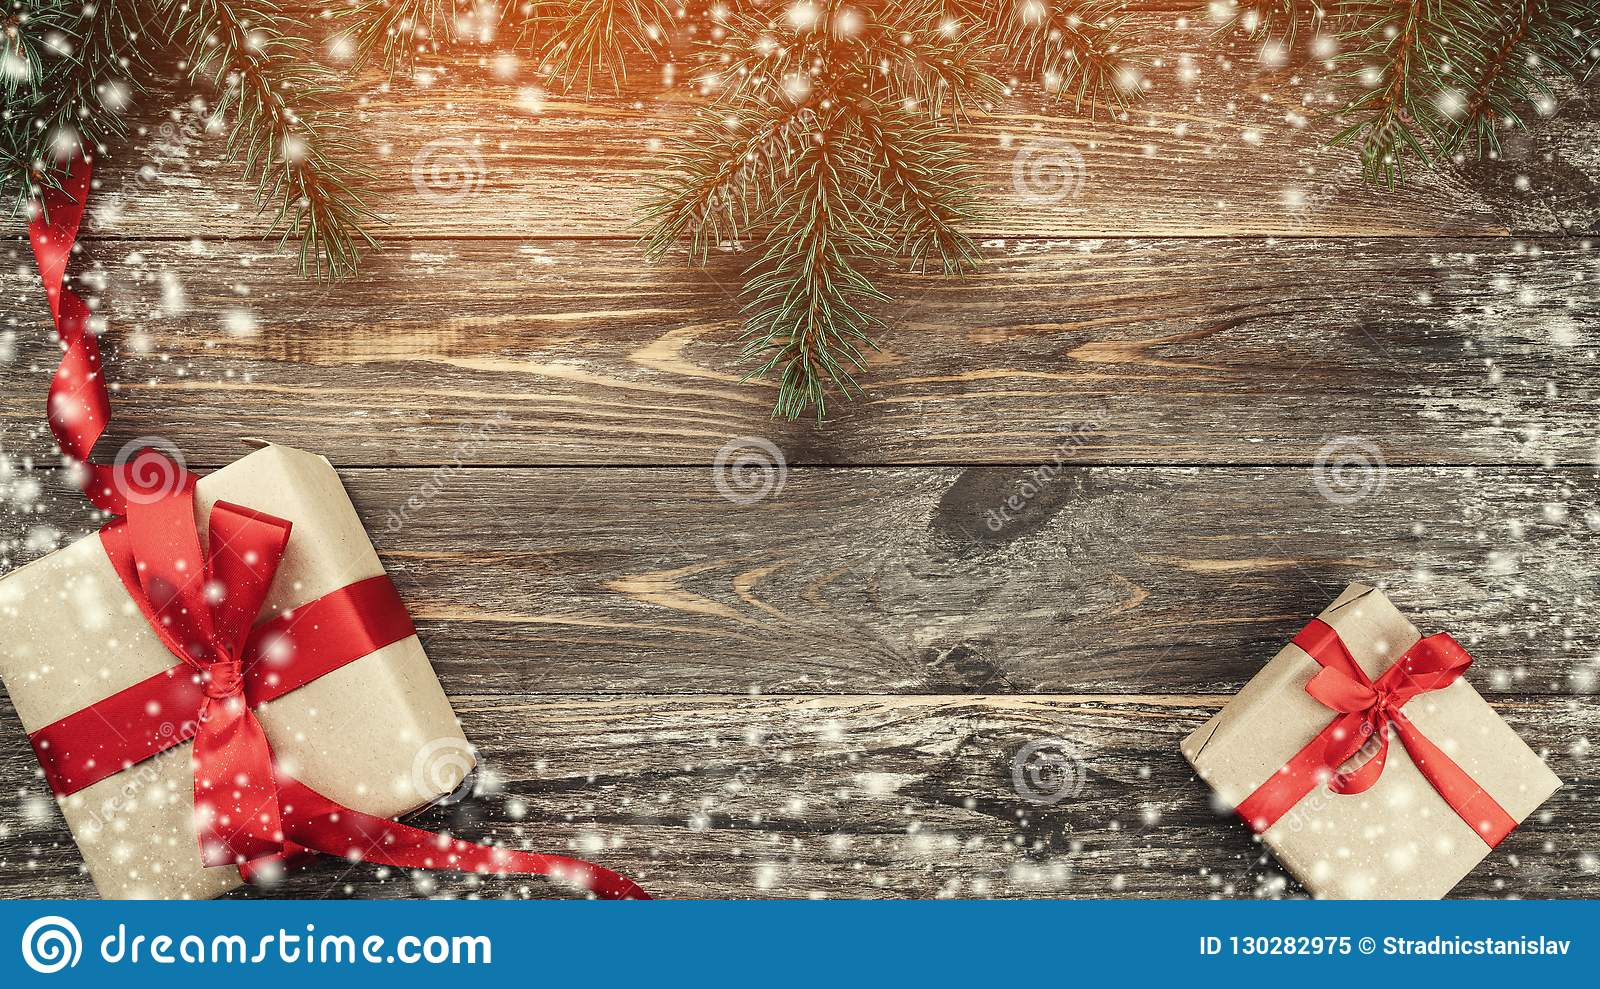 Old Wood Background With Fir Branches. Holiday Gifts. Christmas